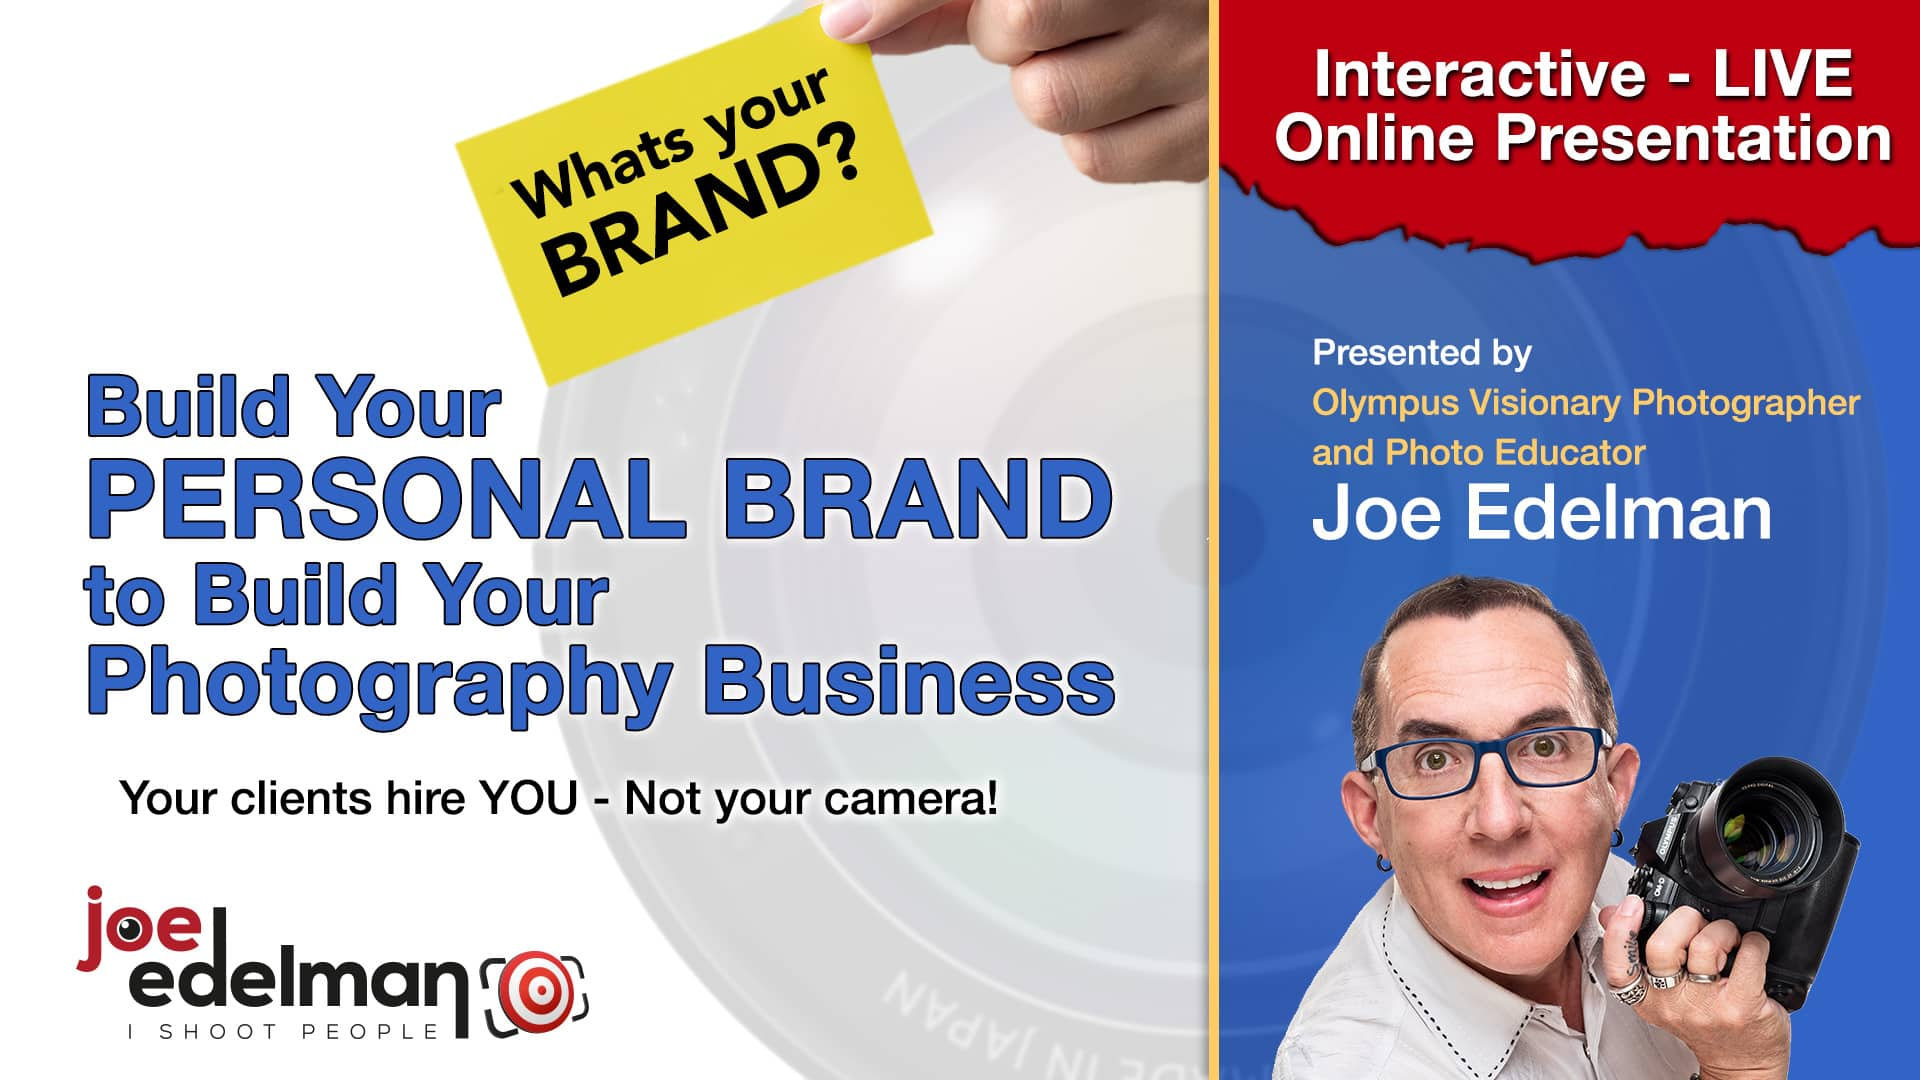 Build Your Personal Brand to Build Your Photography Business